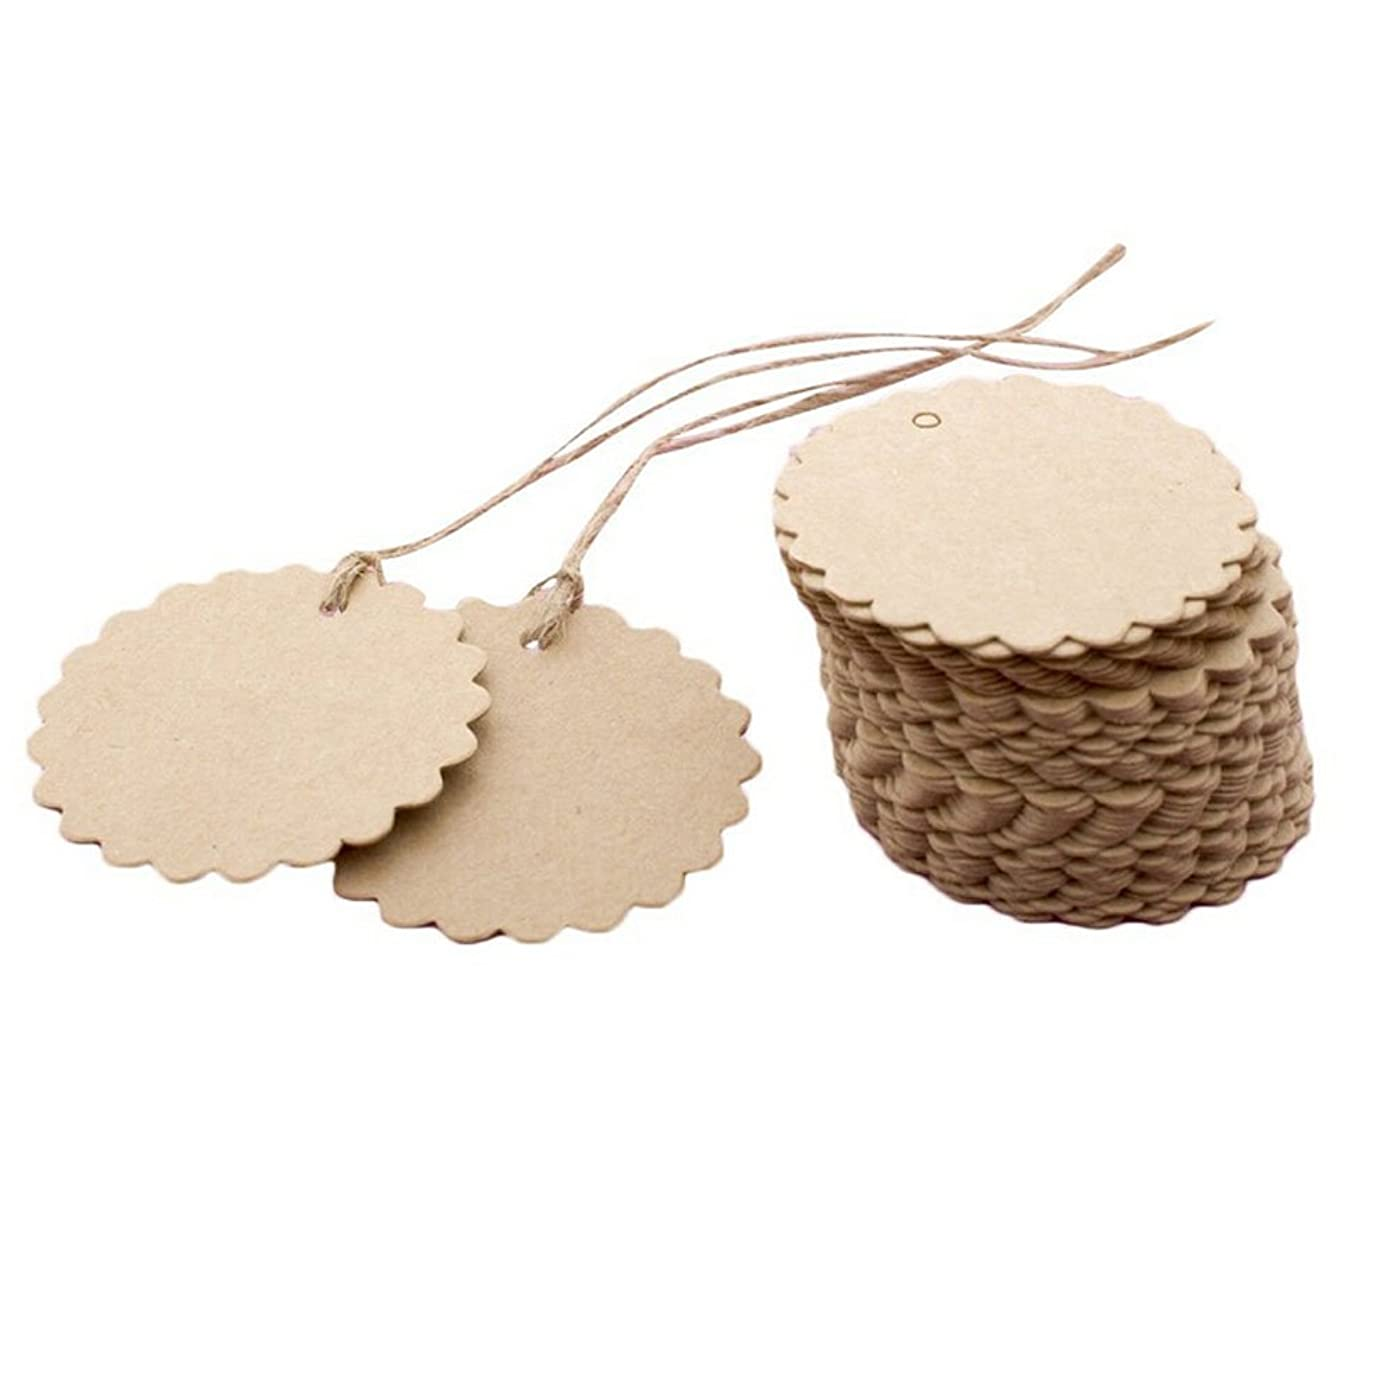 TOPWEL Tags 50pcs Brown Kraft Paper Hang Tags Labels with Free Cut Strings for Gifts, Crafts & Price Tags for Wine, Decor, Weddings (Flower)